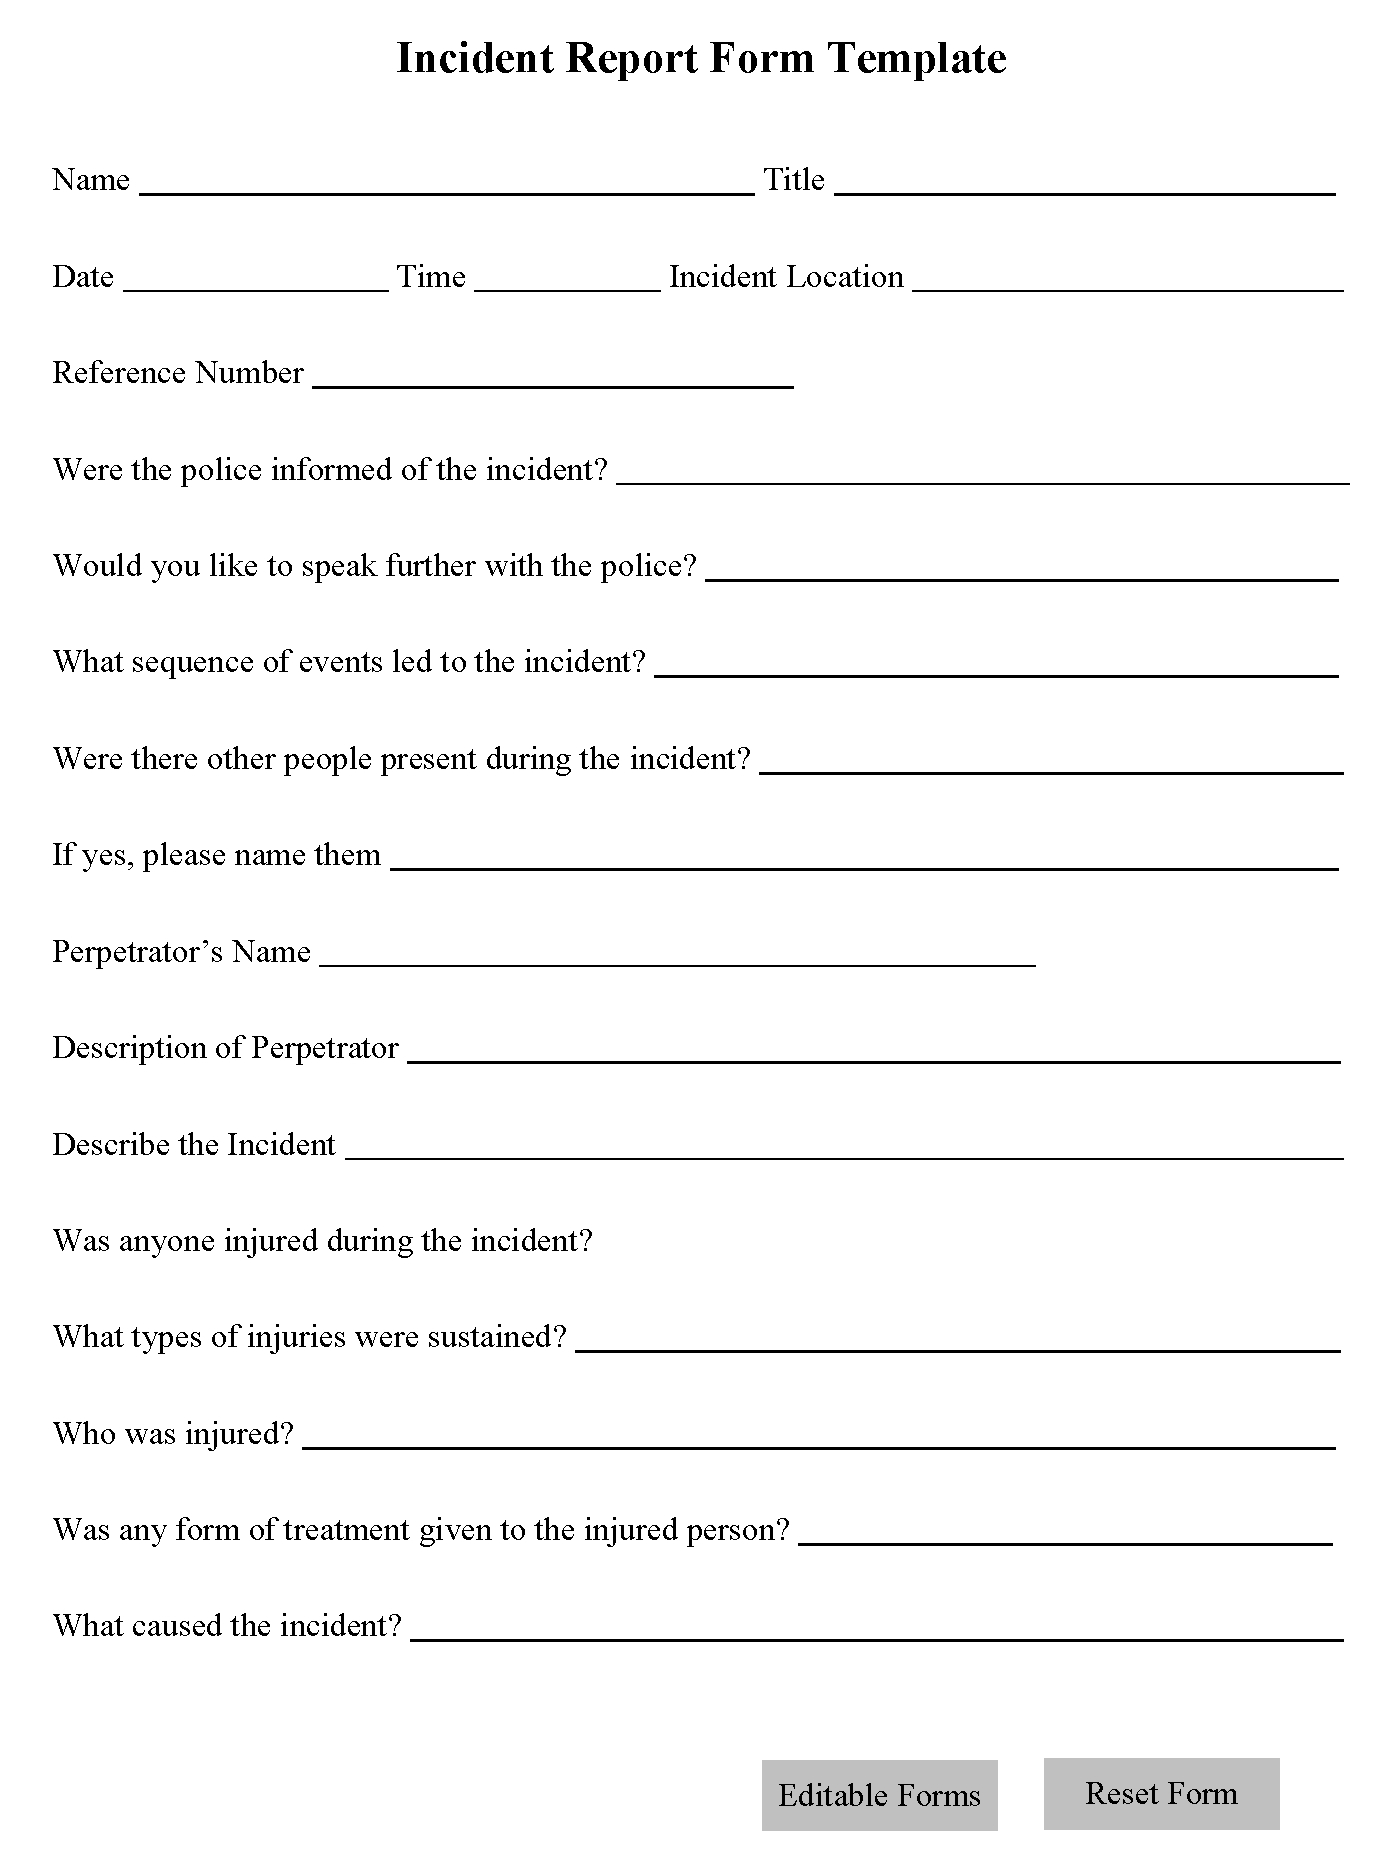 Incident Report Form Template | Editable Forms Inside Incident Report Form Template Word